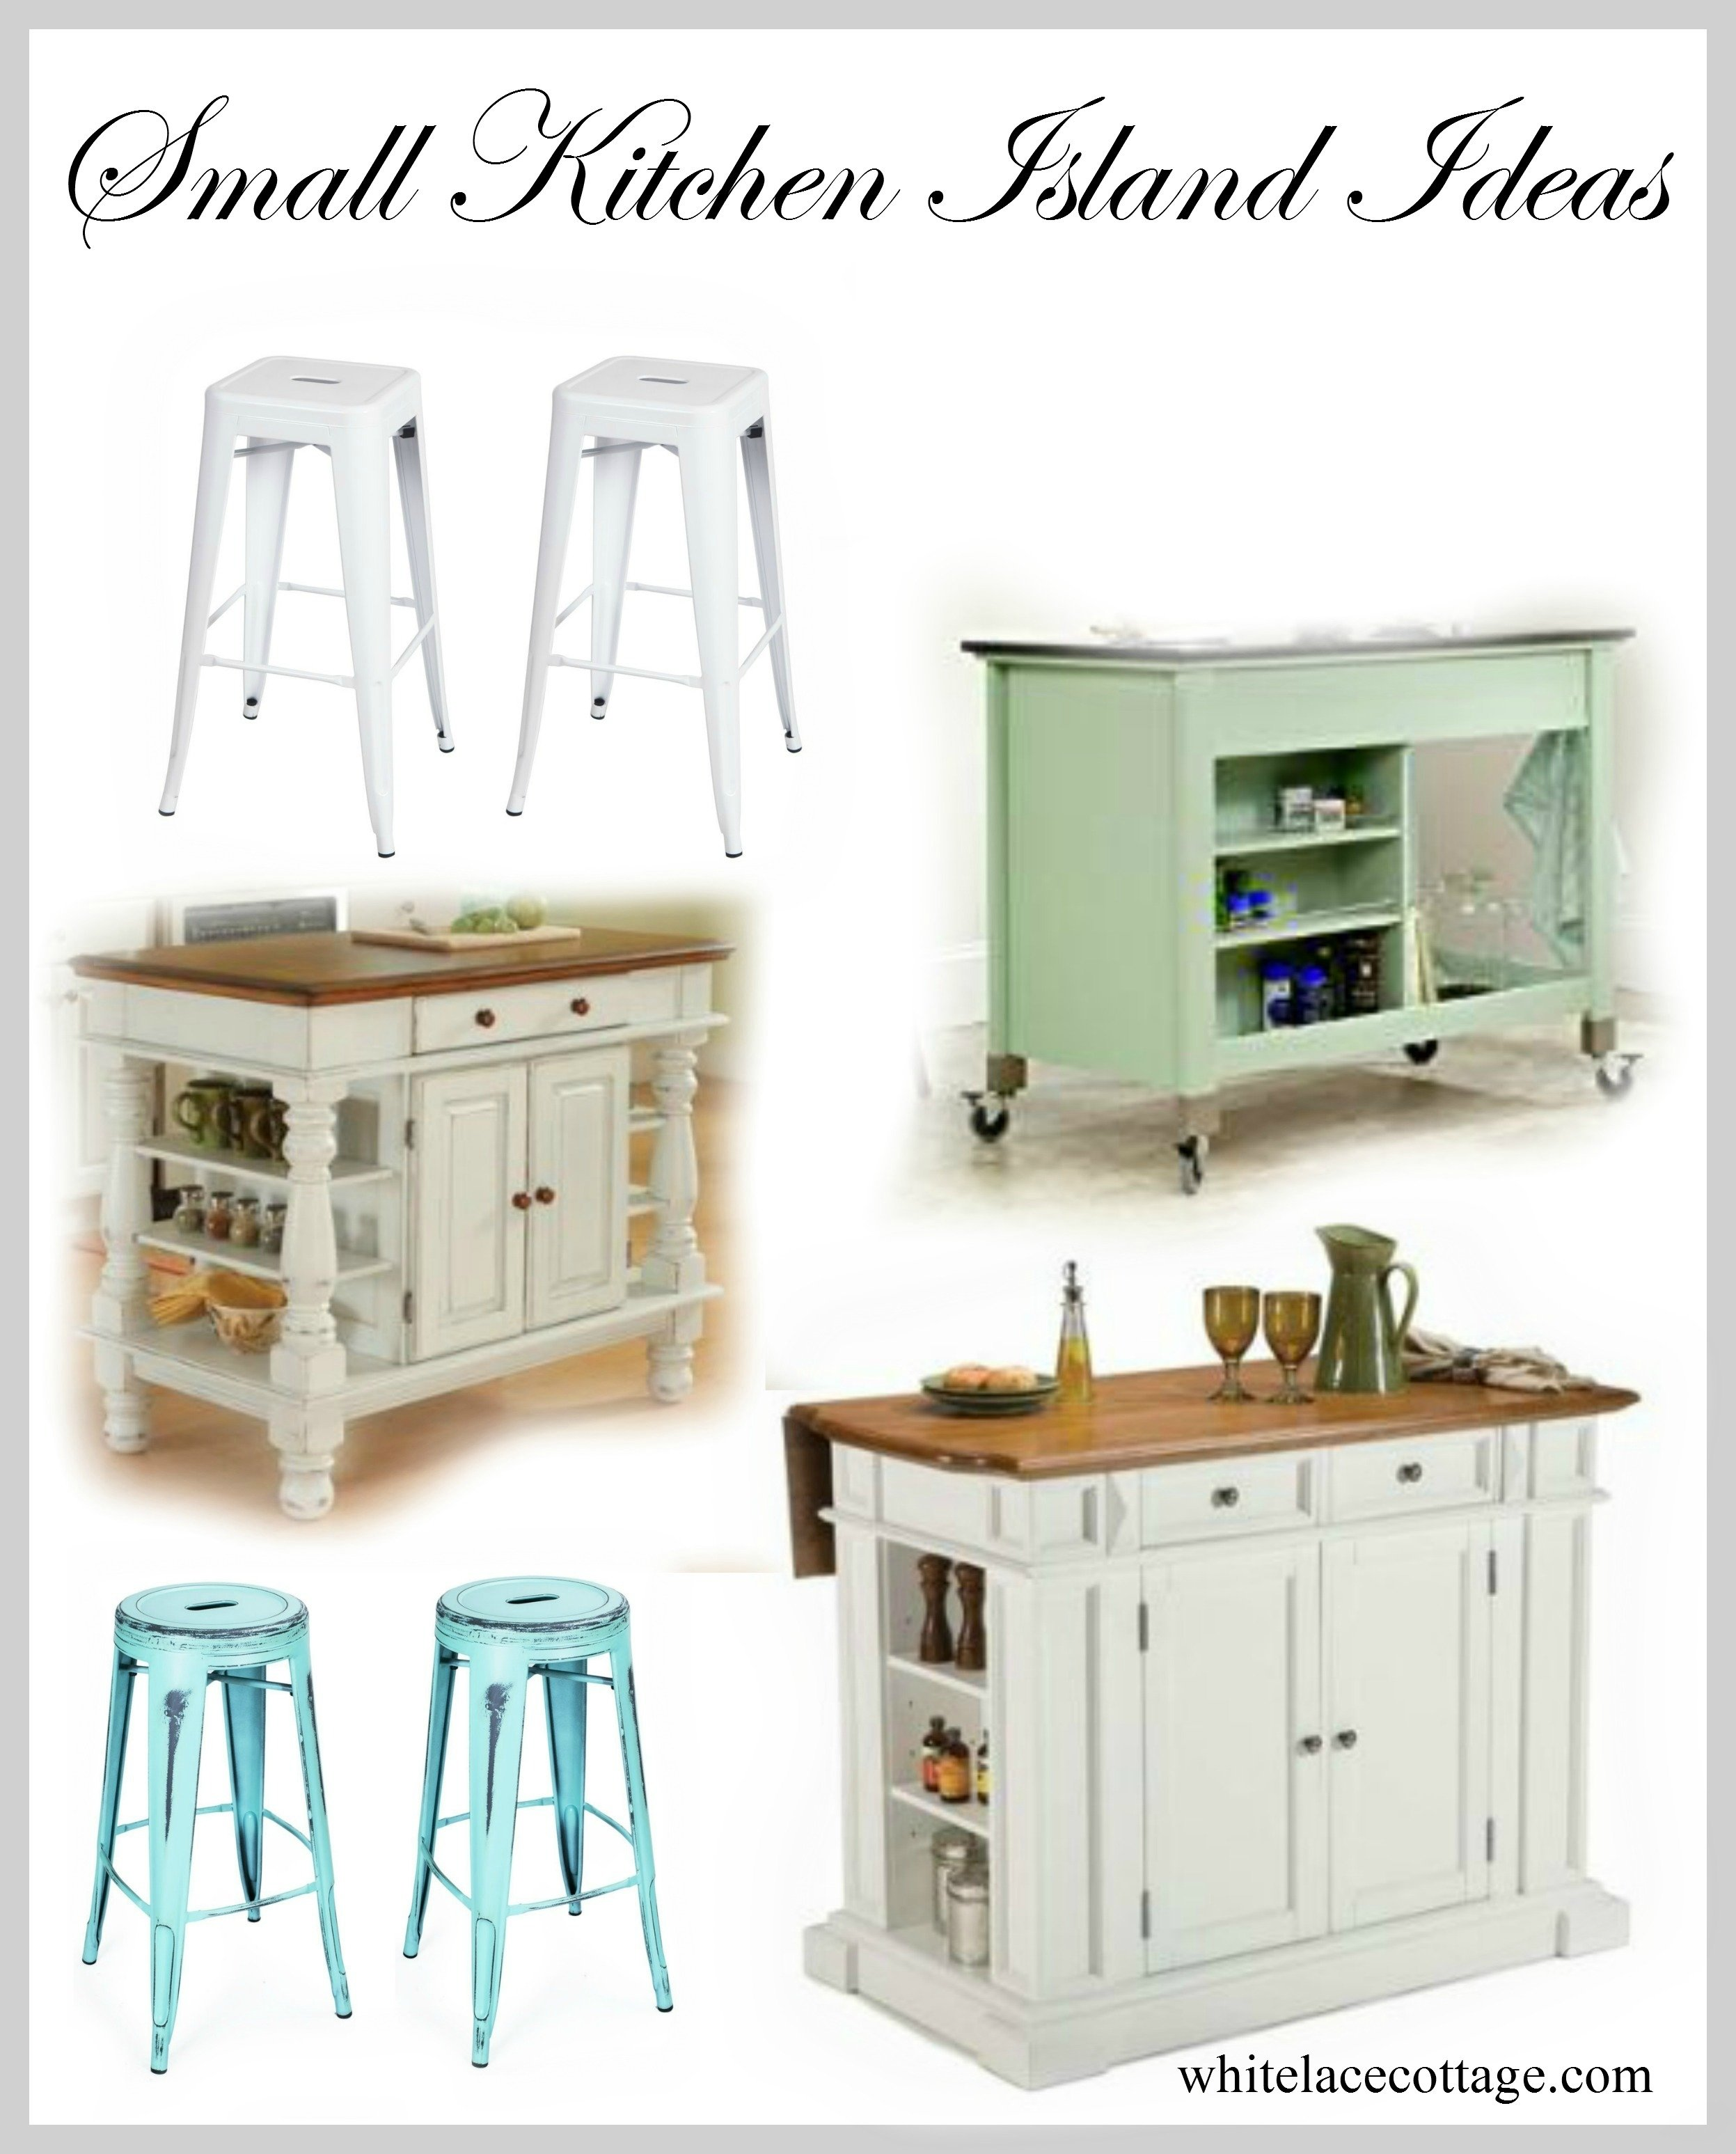 10 Wonderful Small Kitchen Island Ideas With Seating kitchen small kitchen island ideas with seating white lace cottage 2020